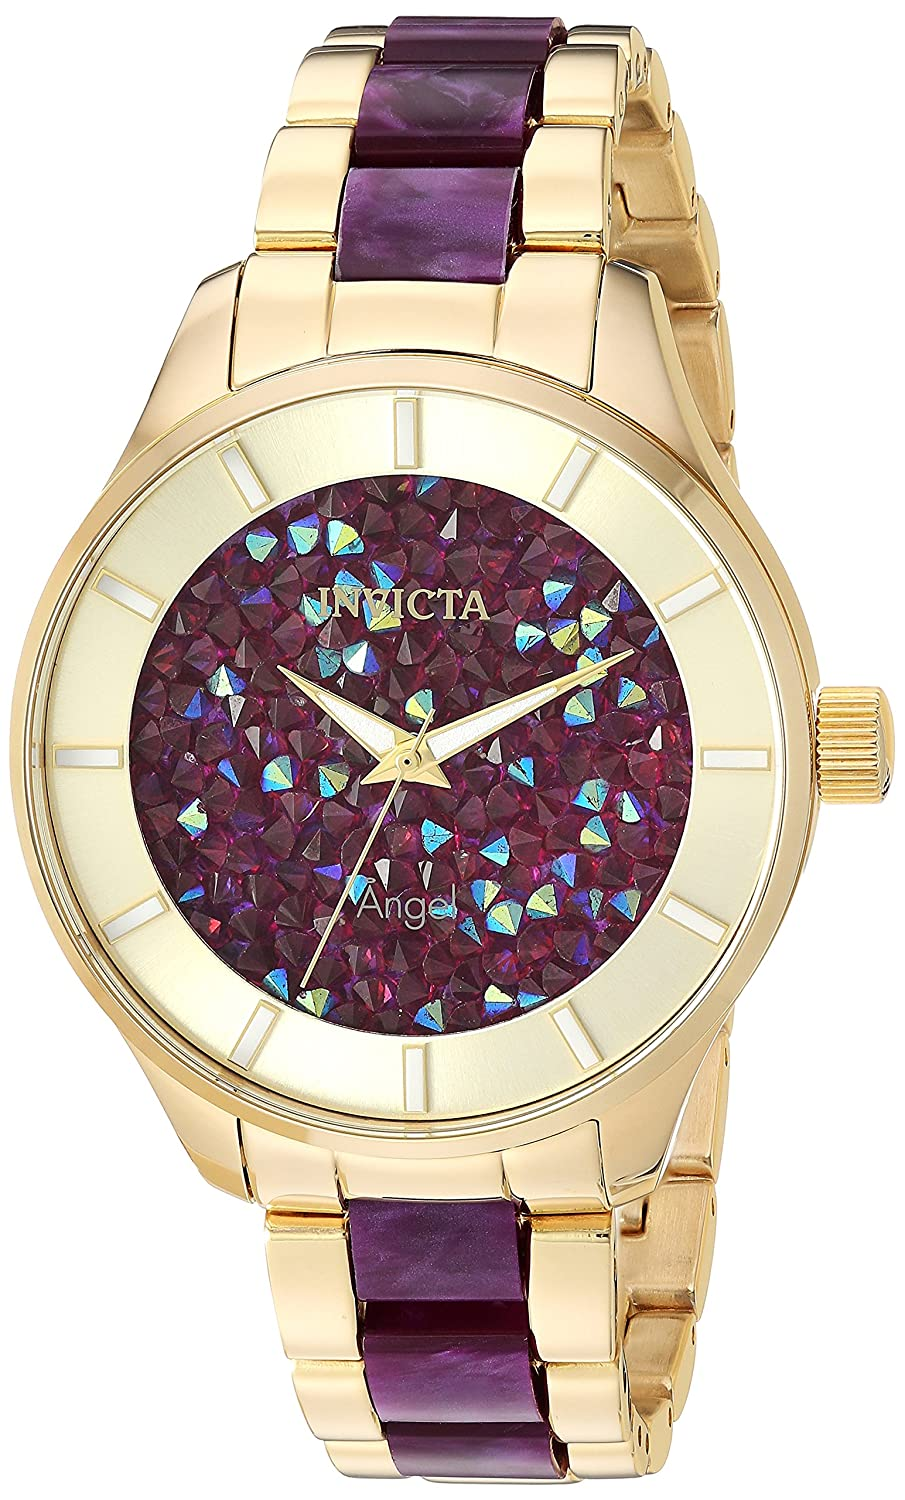 Invicta Women s Angel Quartz Watch with Stainless Steel Strap, Two Tone, 18 Model 24664